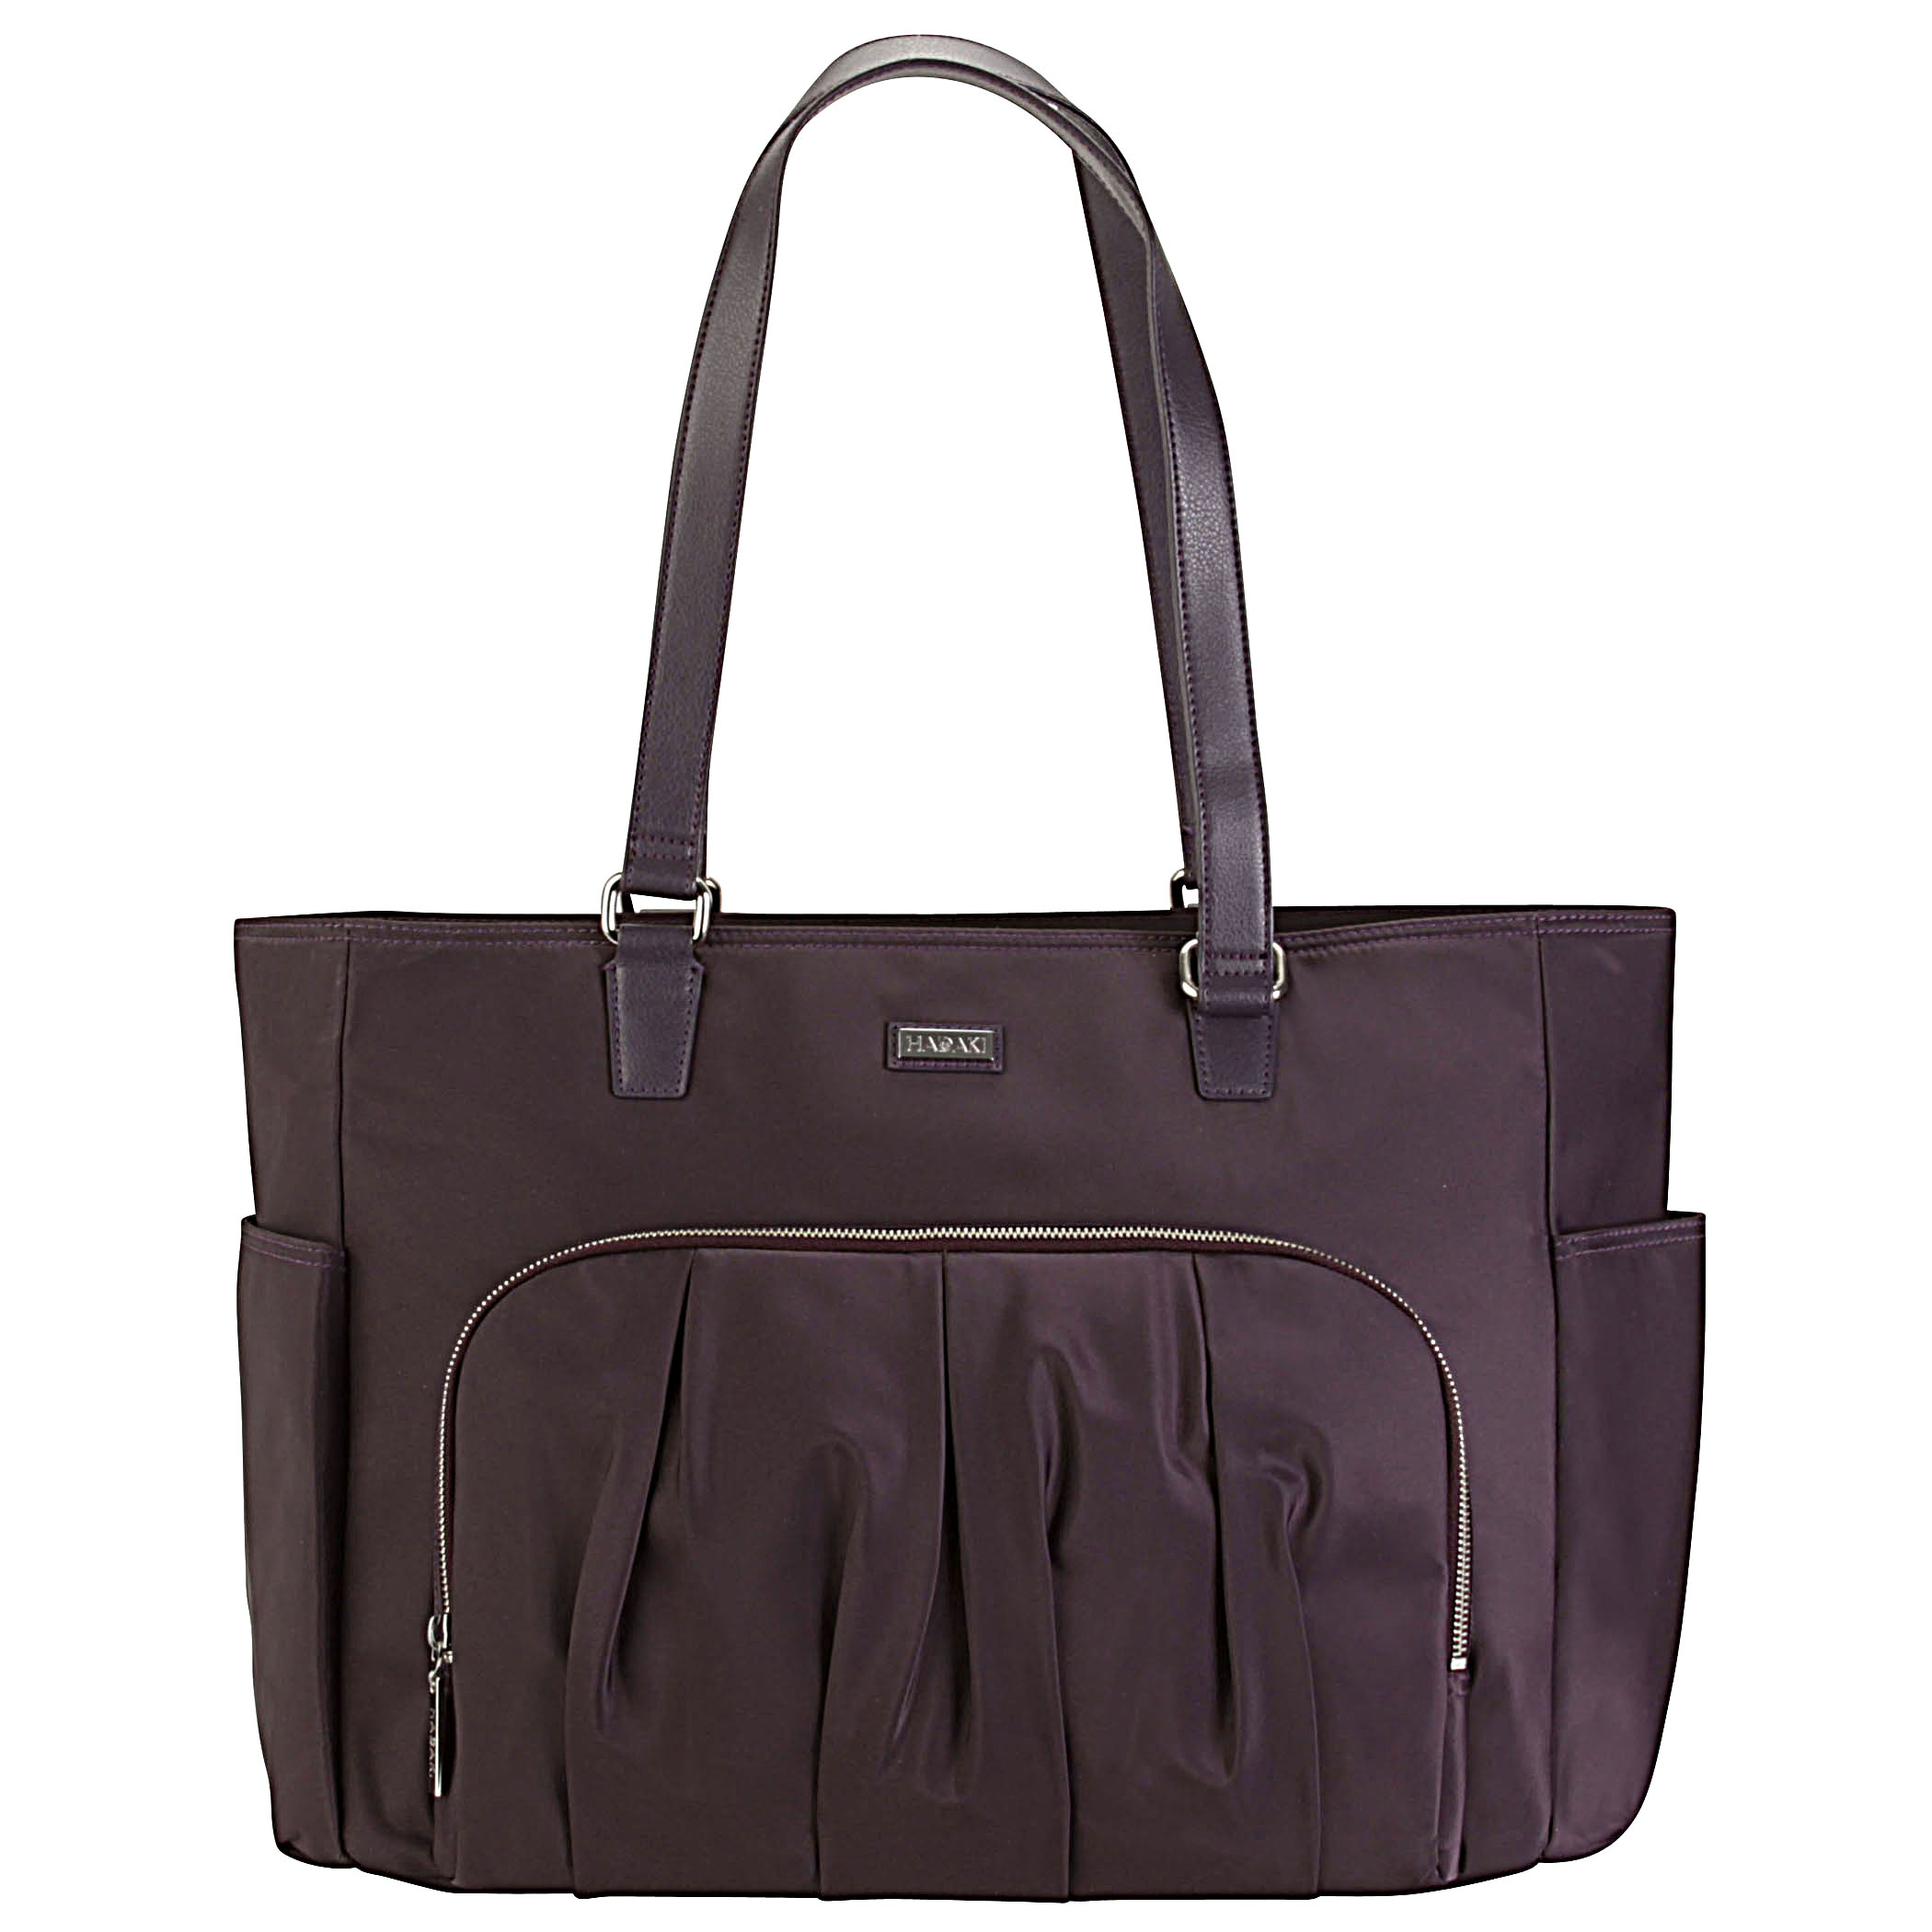 Work & Play Tote - Plum Perfect